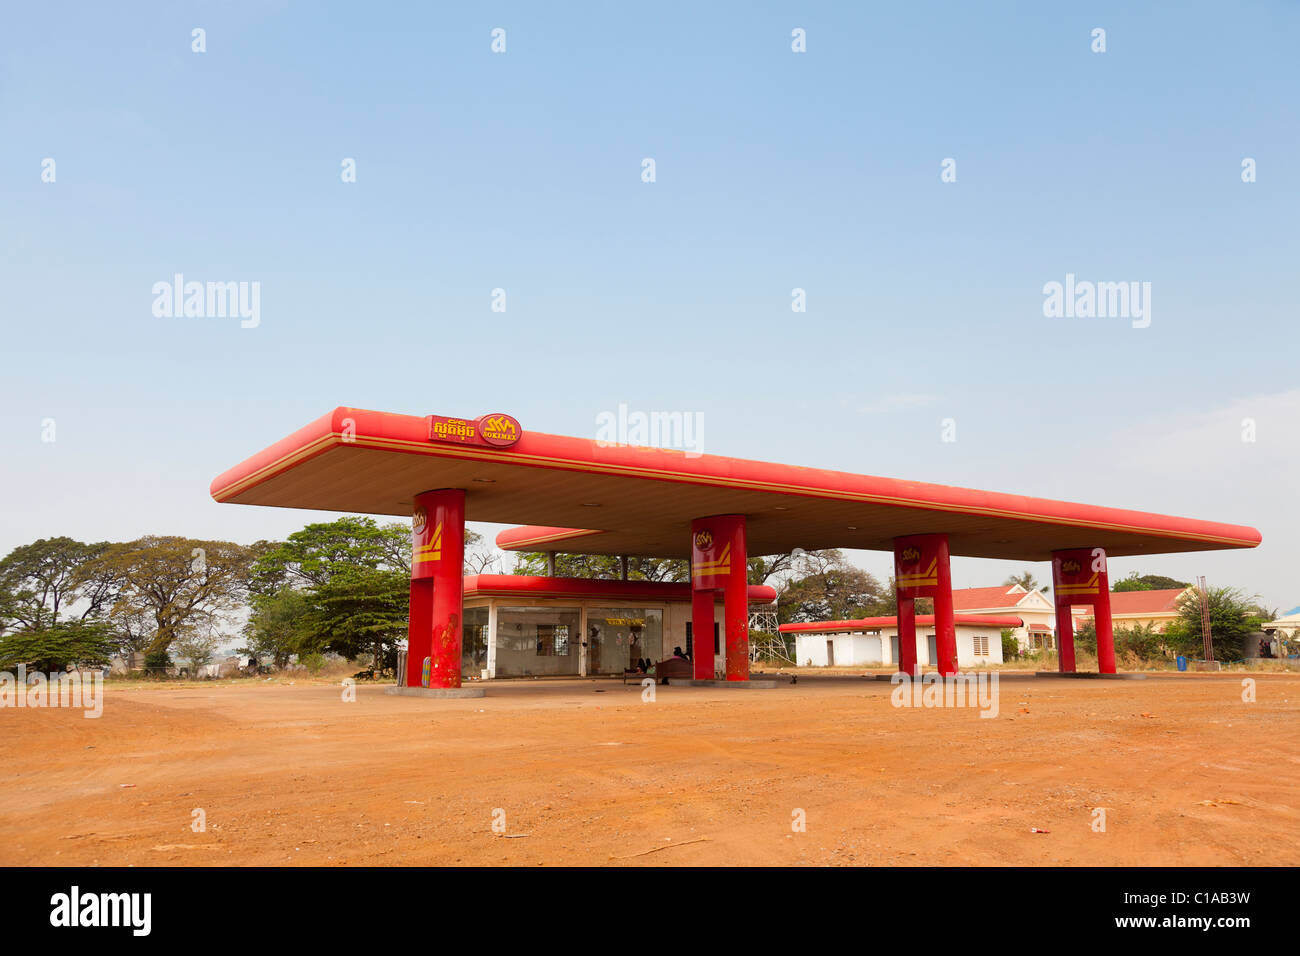 Gas Station Cambodia Stock Photos & Gas Station Cambodia